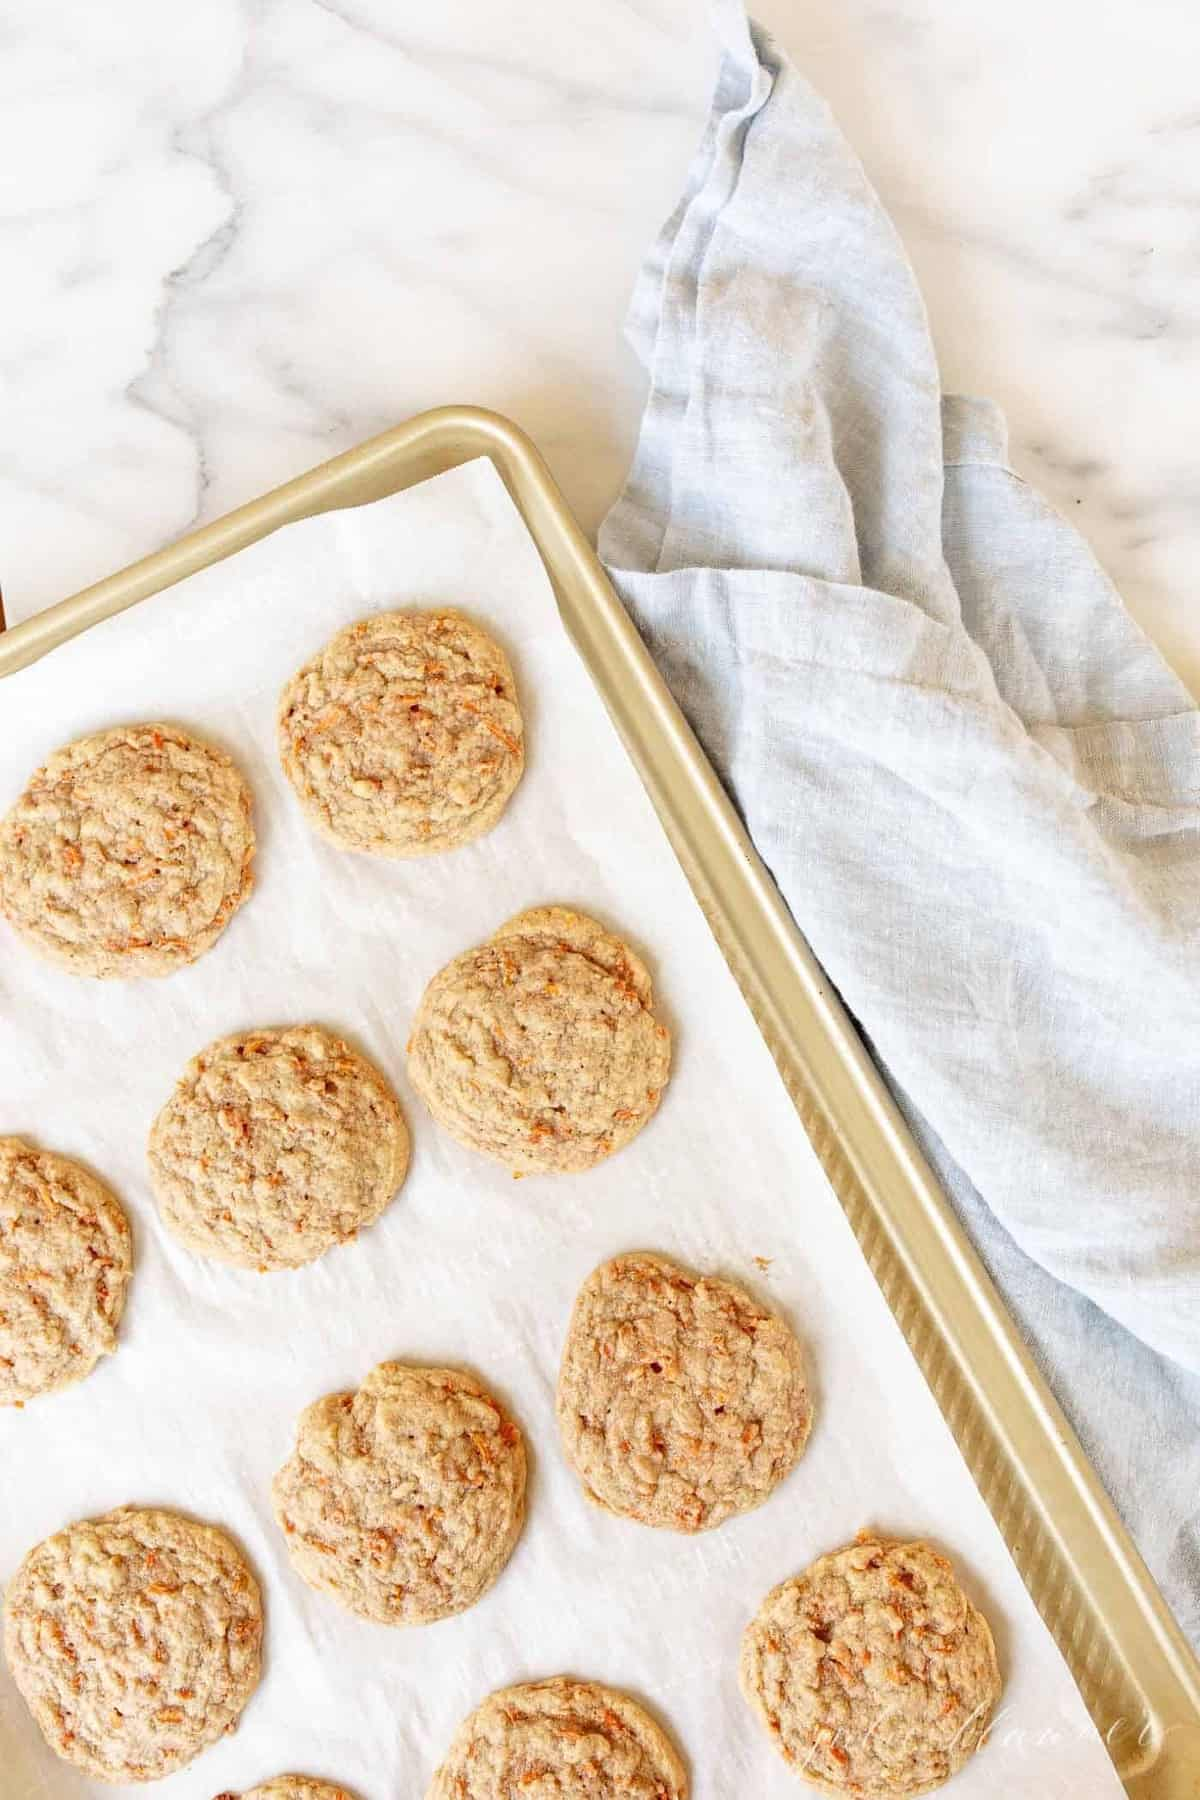 Gold baking sheet with carrot cookies.